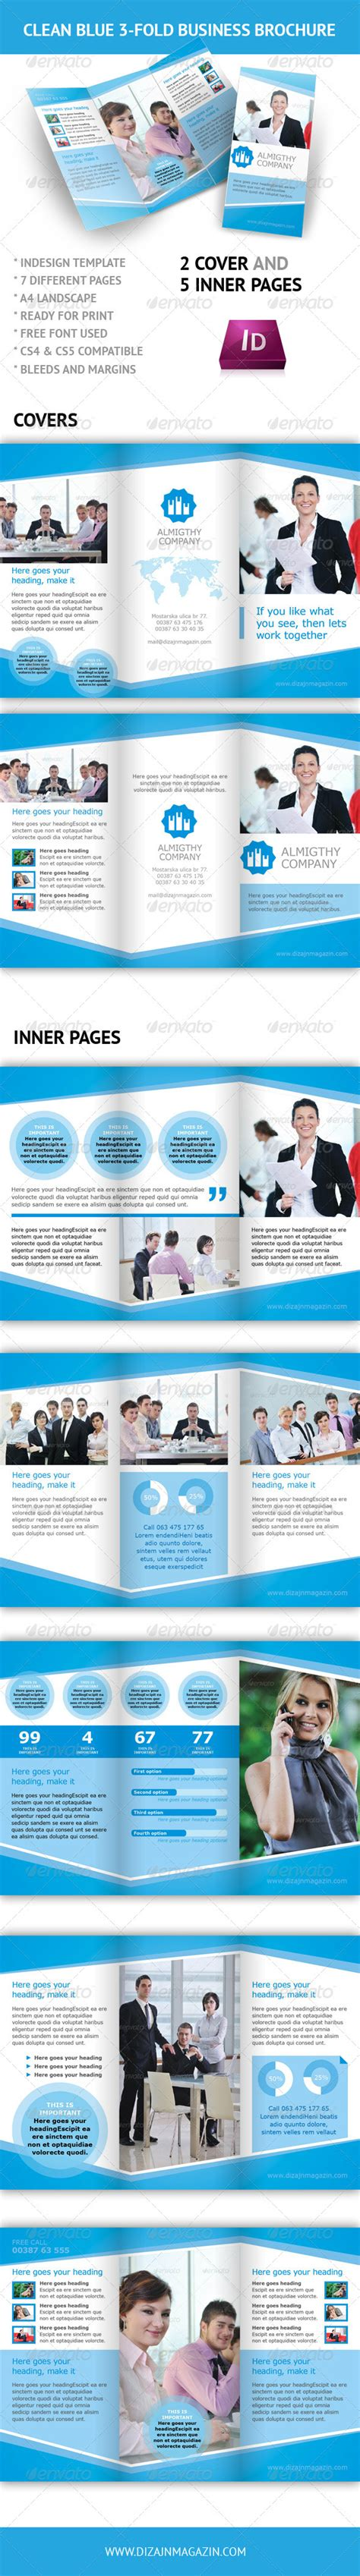 3 fold brochure template indesign clean blue 3 fold business brochure indesign graphicriver